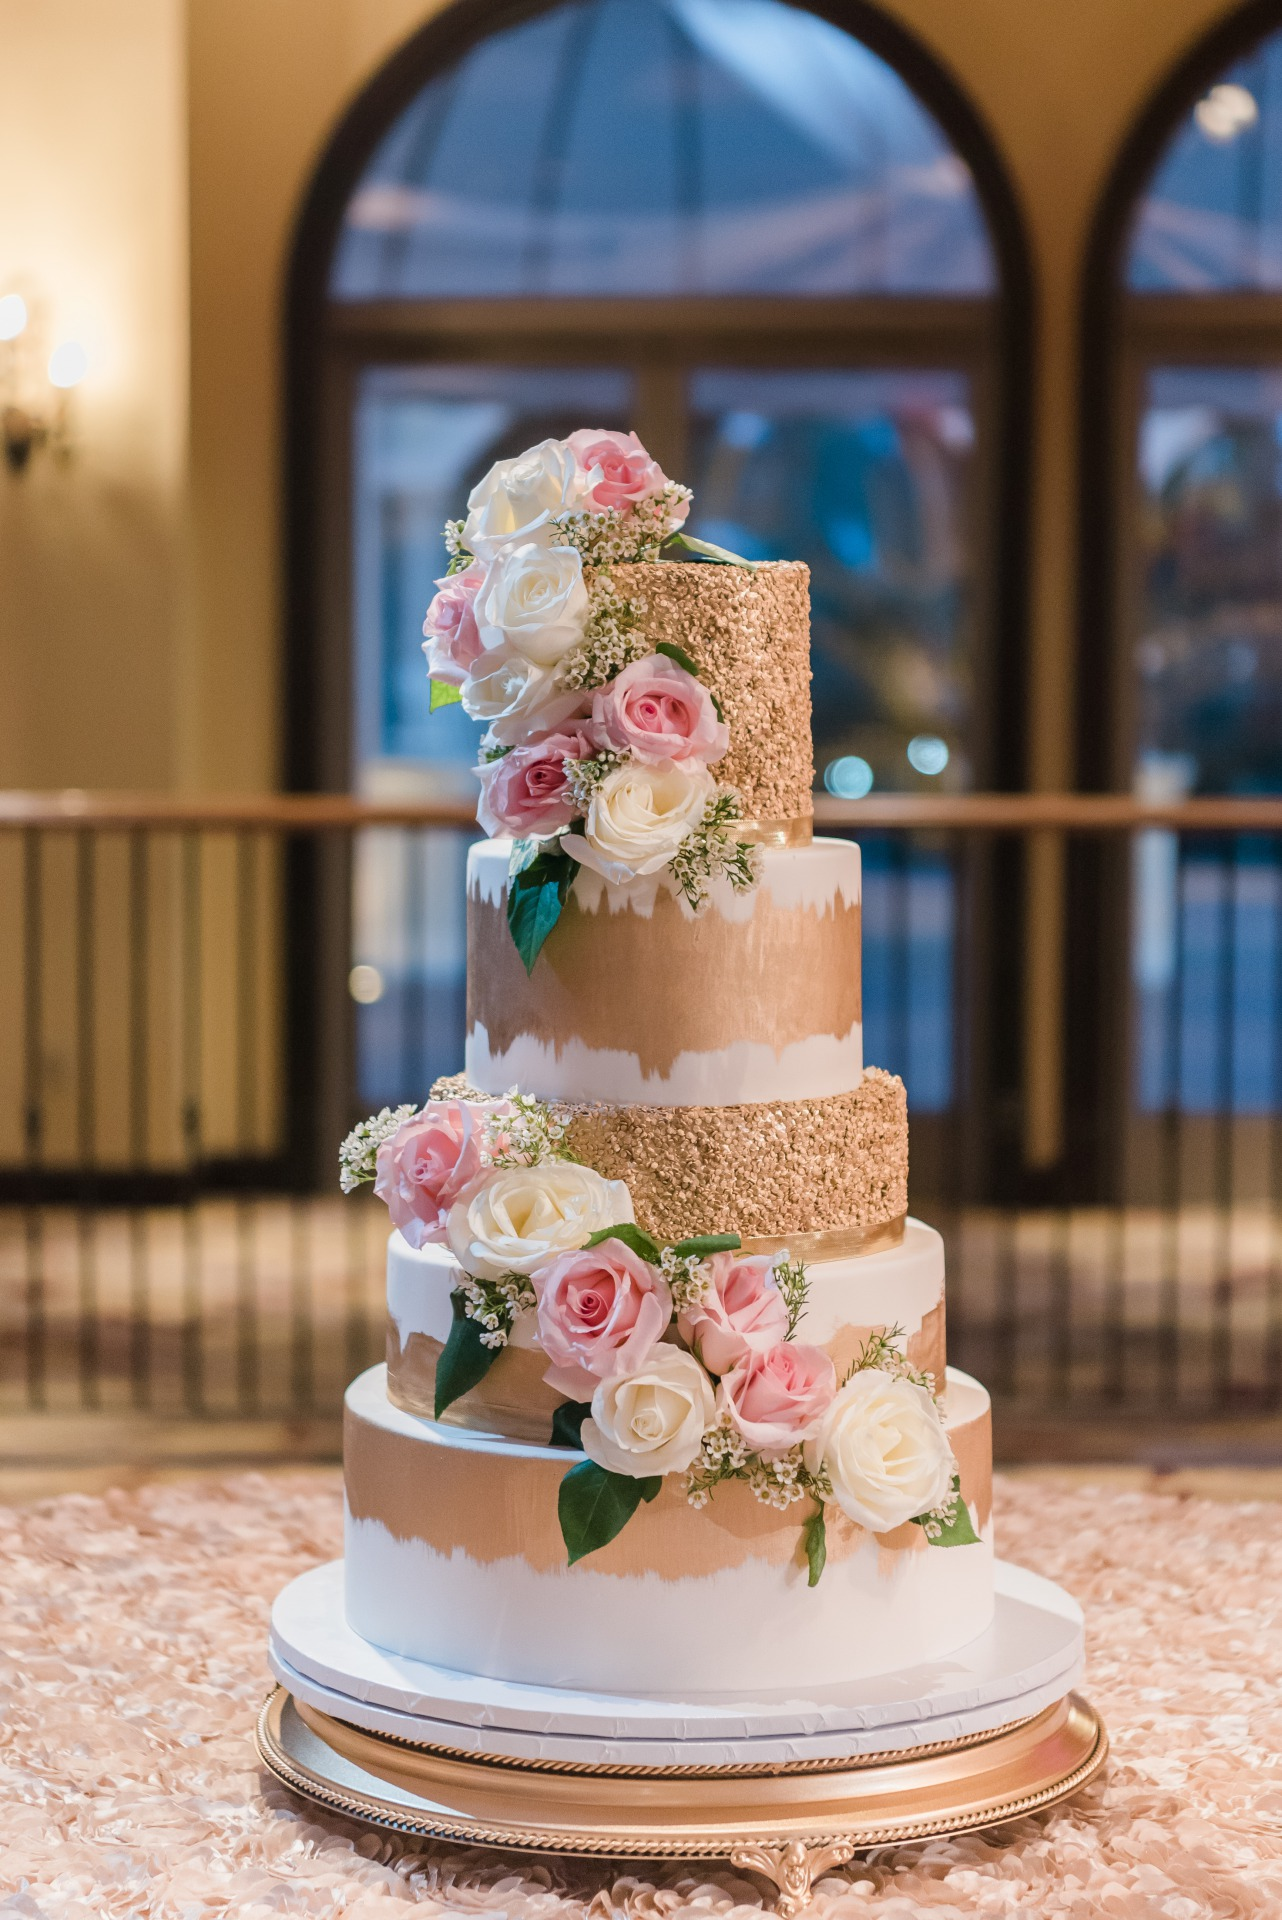 Sunning 4 tiered white wedding cake with gold shimmery accents covered in fresh roses from Las Vegas Custom Cakes.